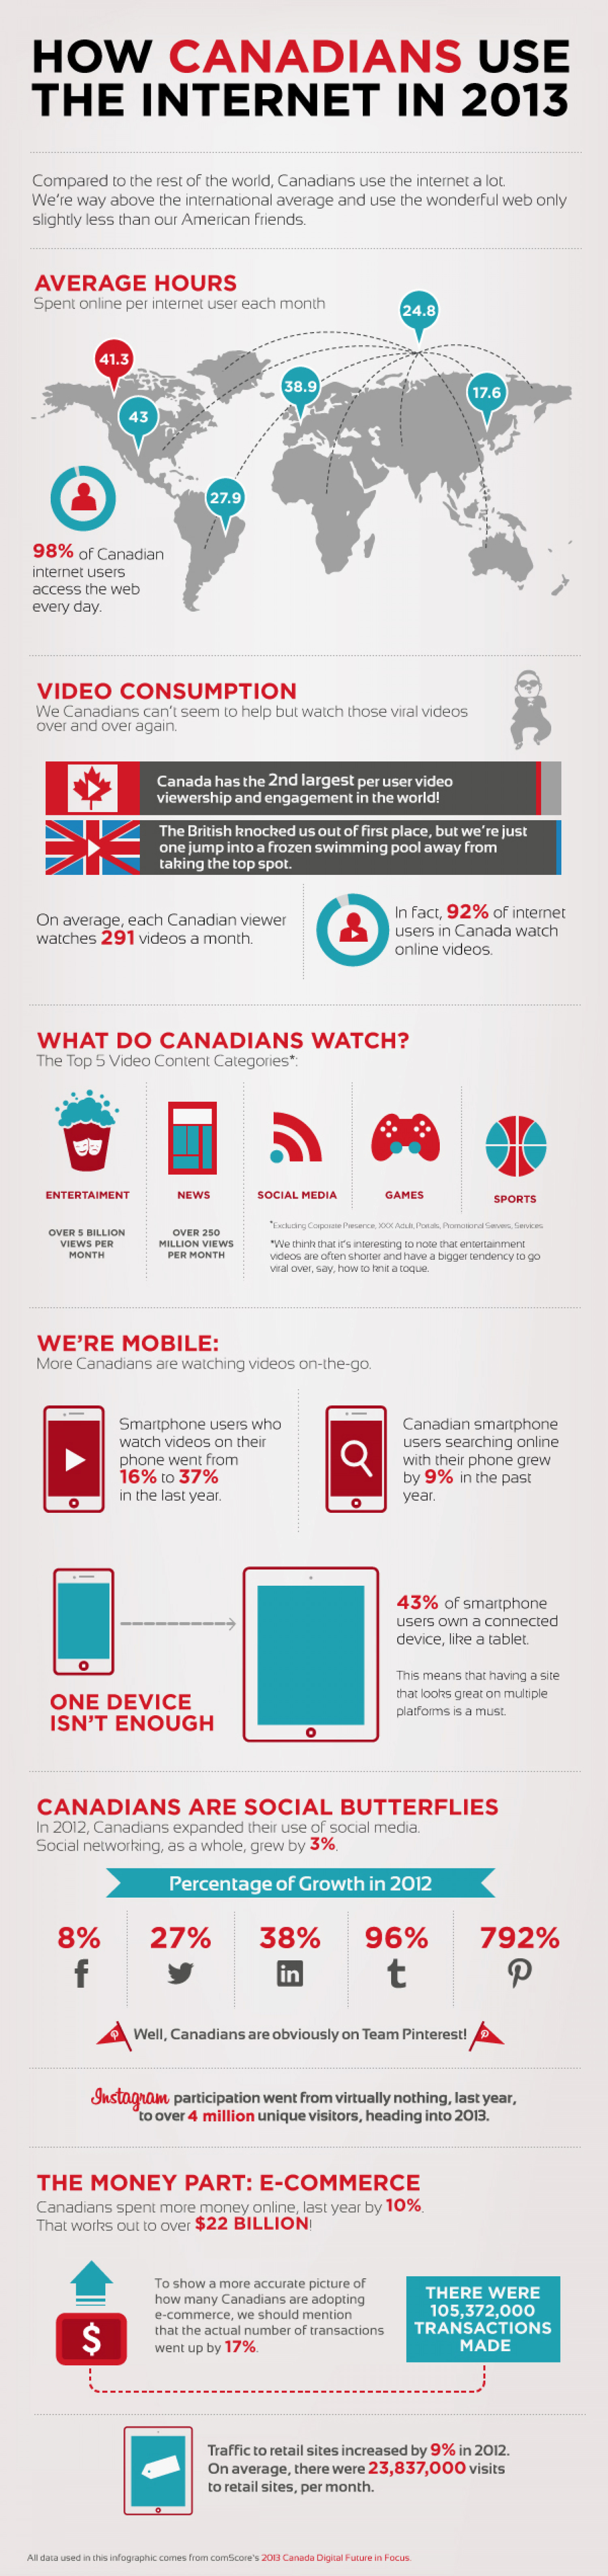 How Canadians Use the Internet in 2013 Infographic